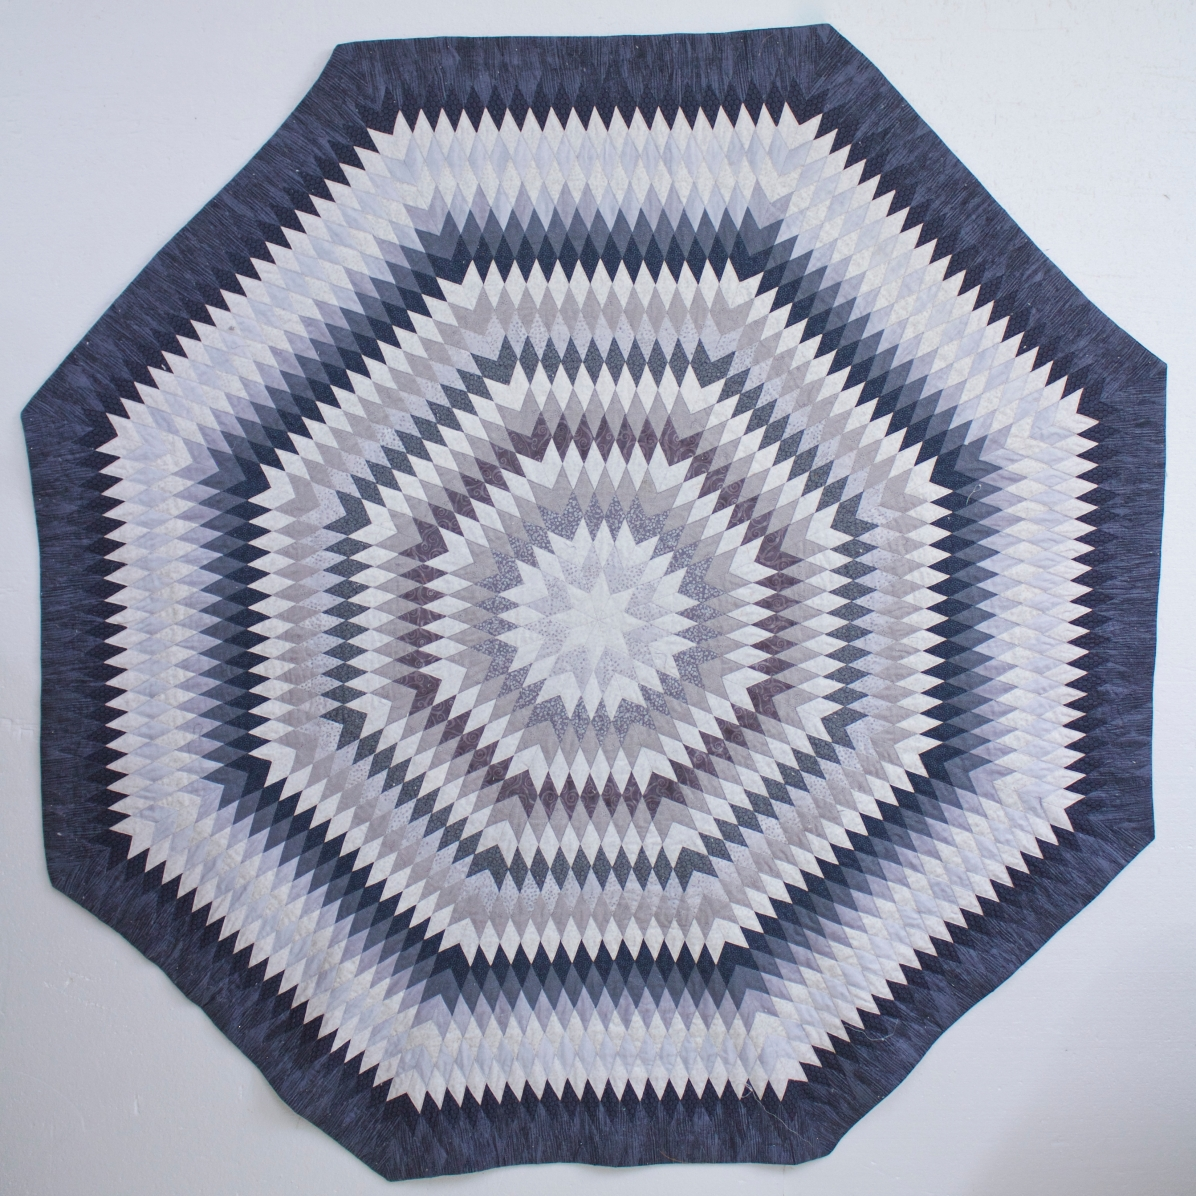 Blue Sun by Norma Slabbert, 2019. English Paper Piecing, Sunburst quilt design.